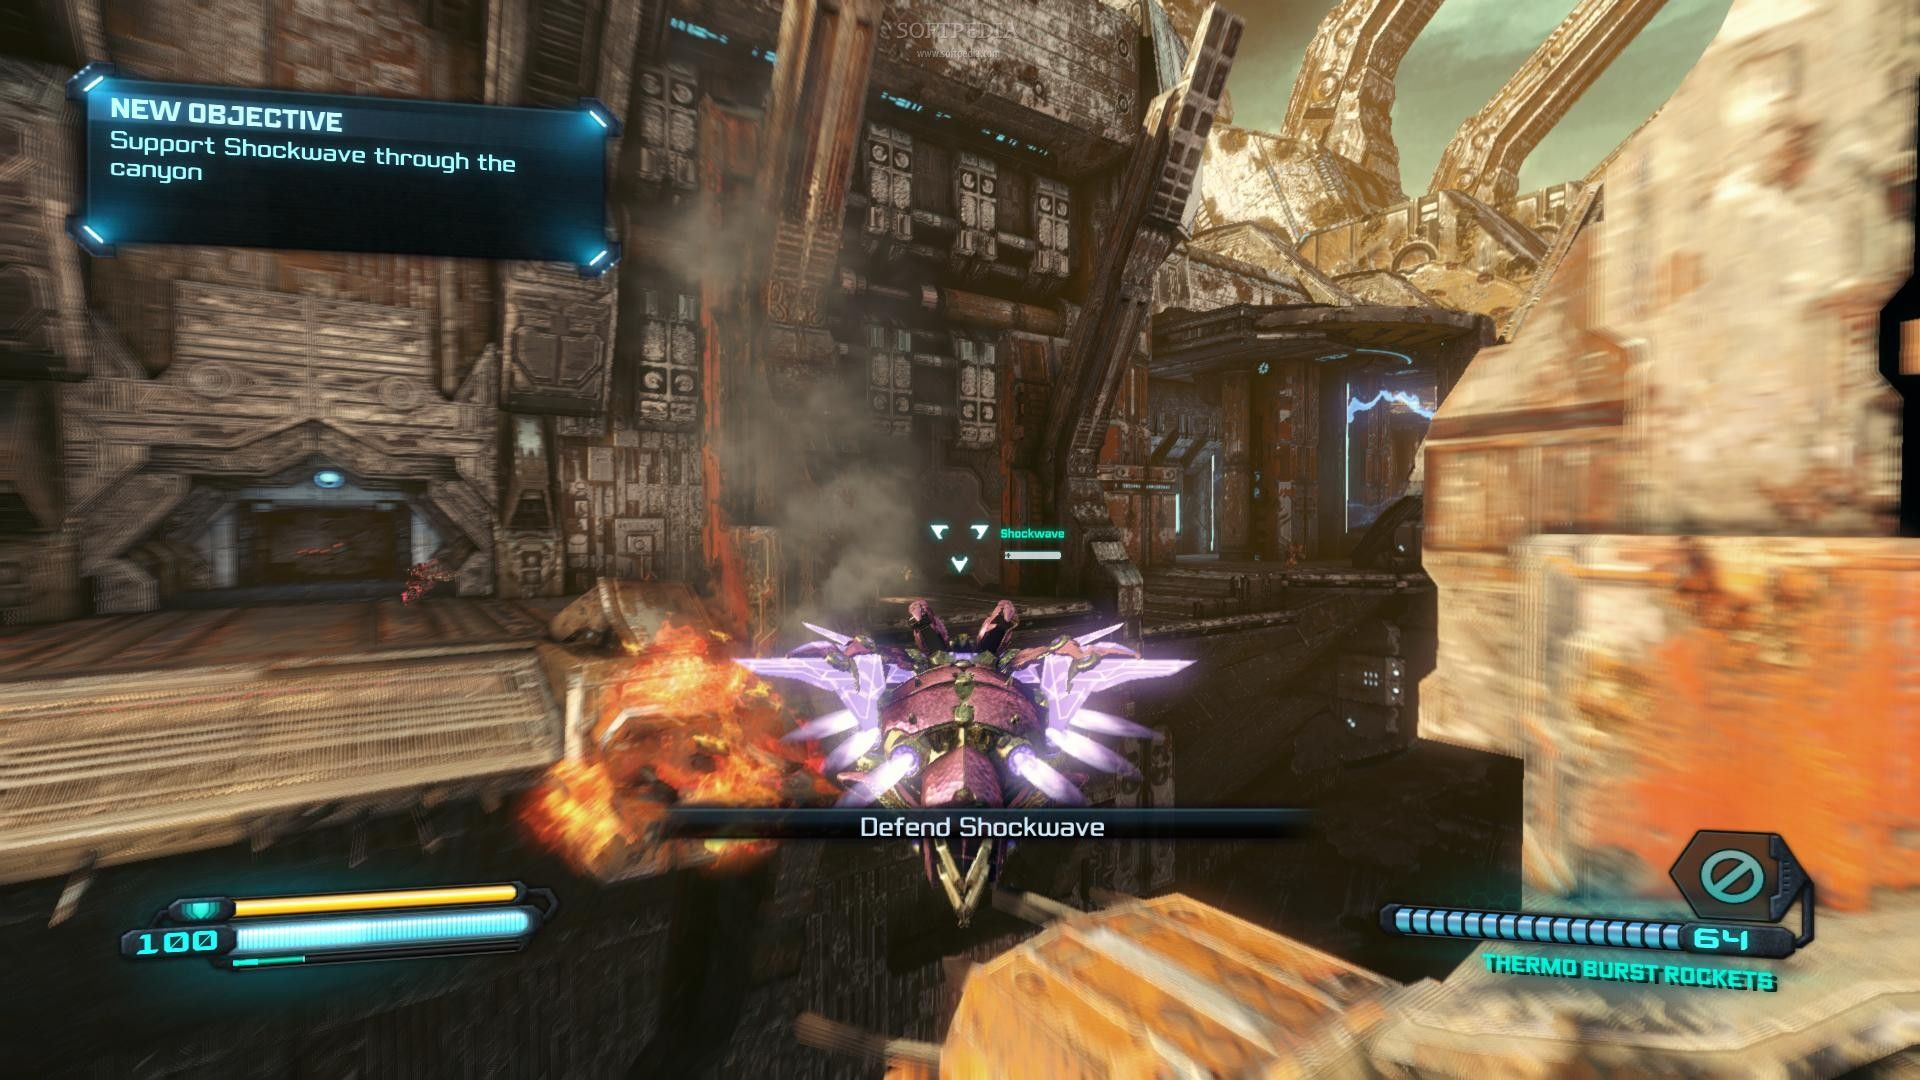 transformers: rise of the dark spark review (pc)